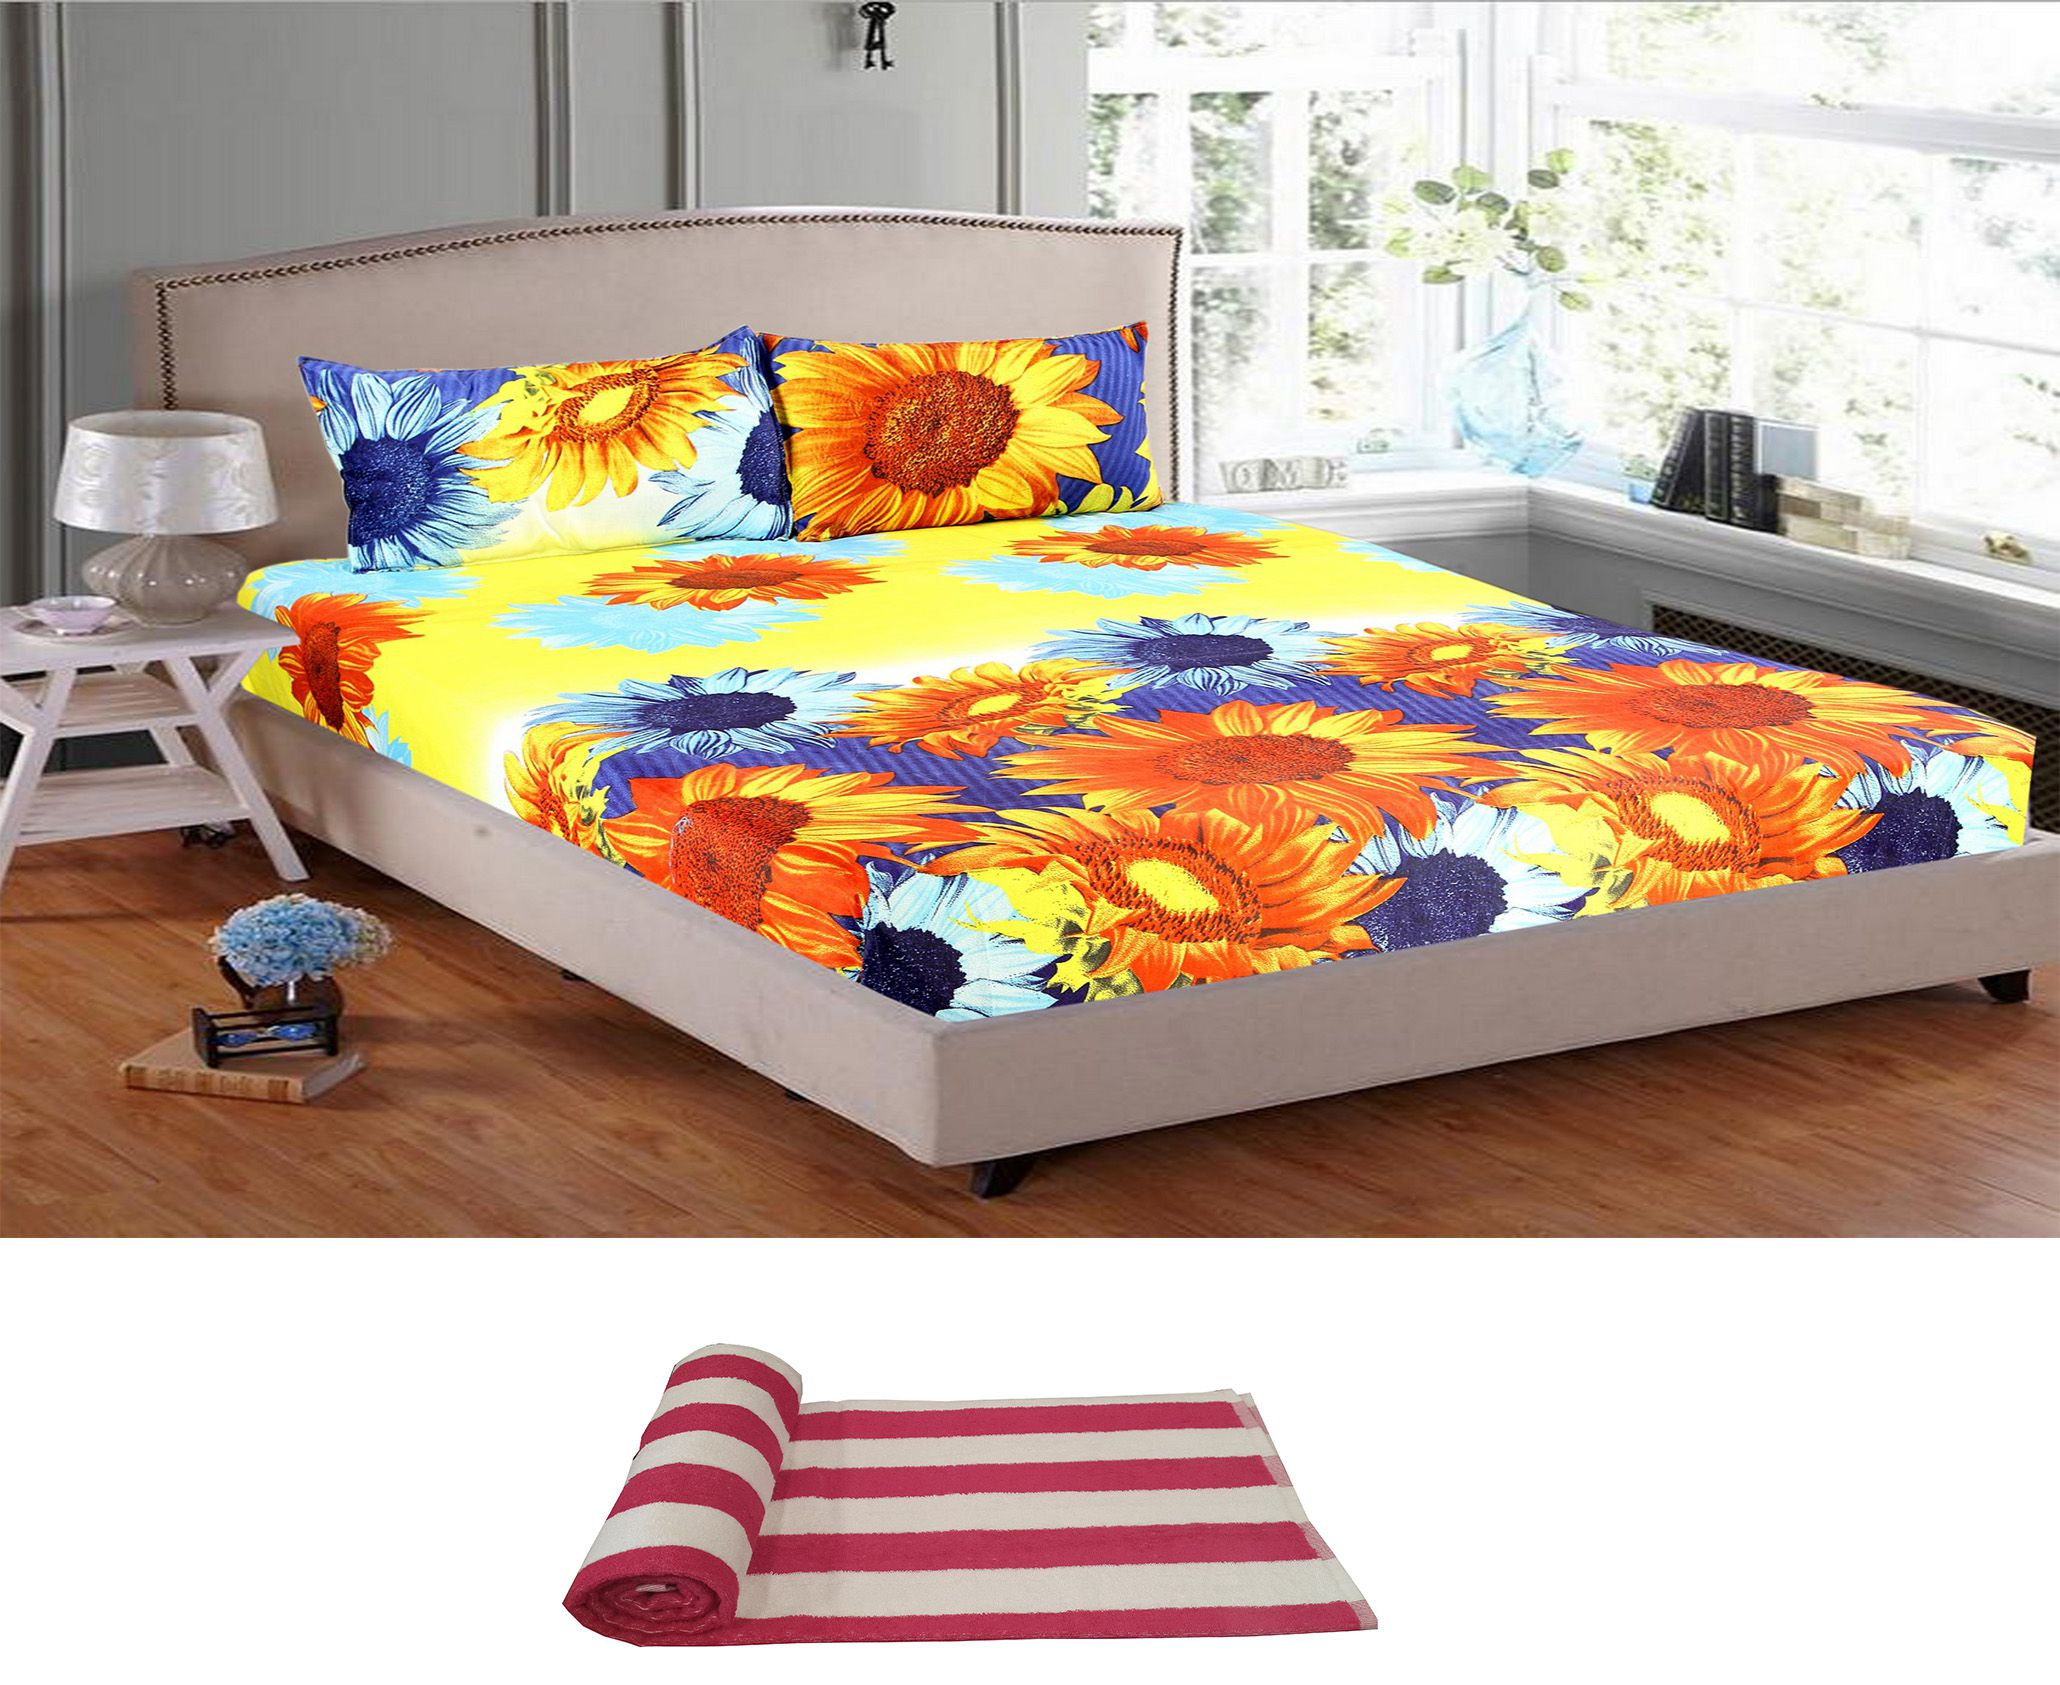 Welhouse India Polyester Double Bedsheet with 2 Pillow Covers